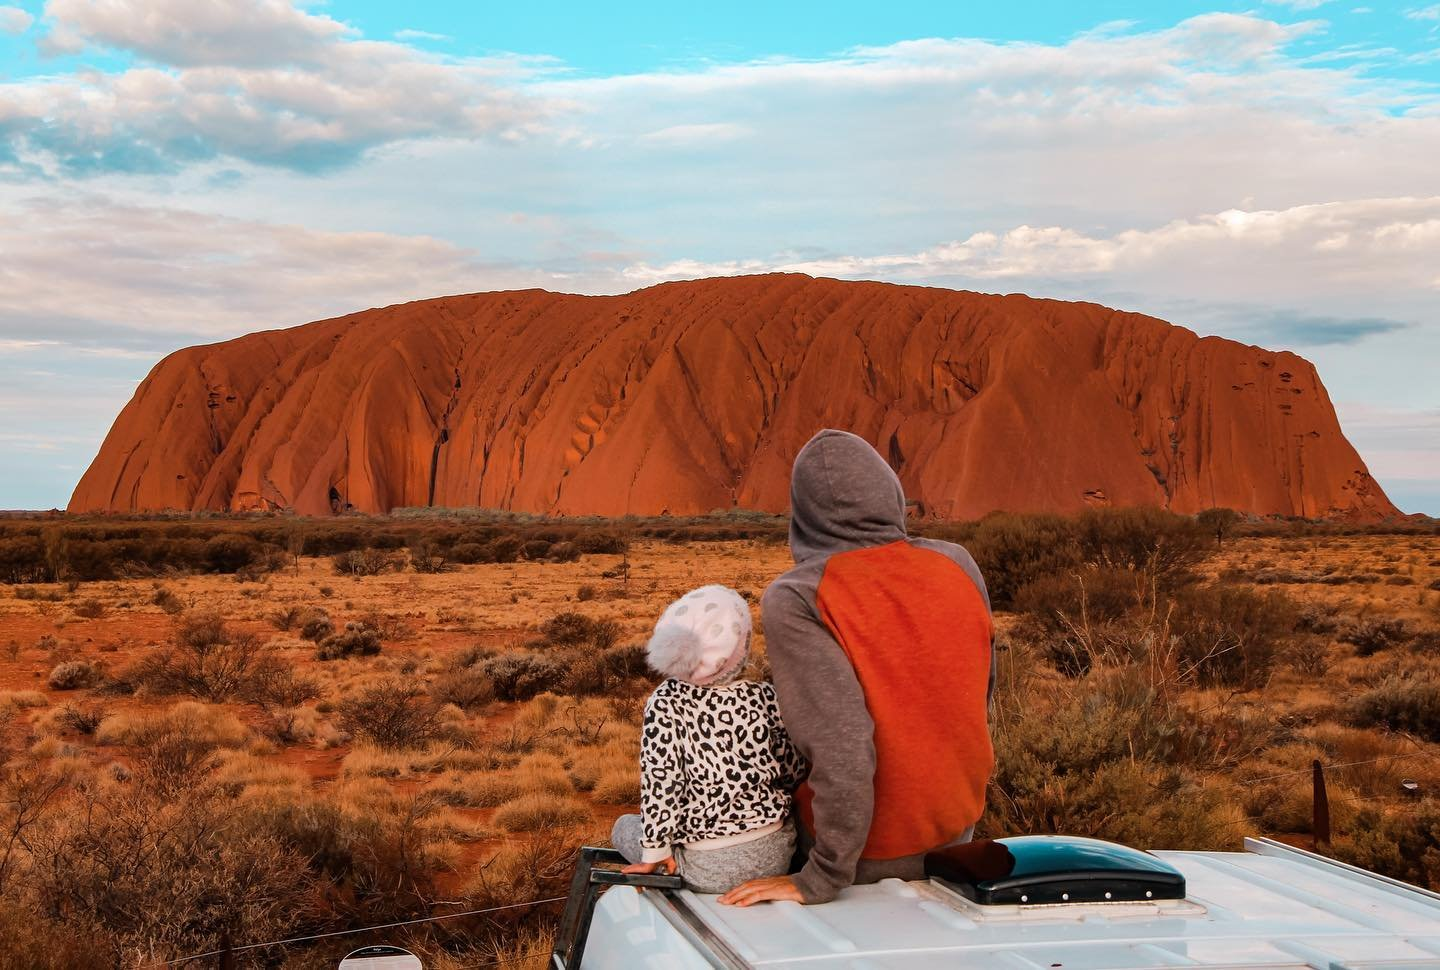 A man and child dressed for chilly weather at Uluru